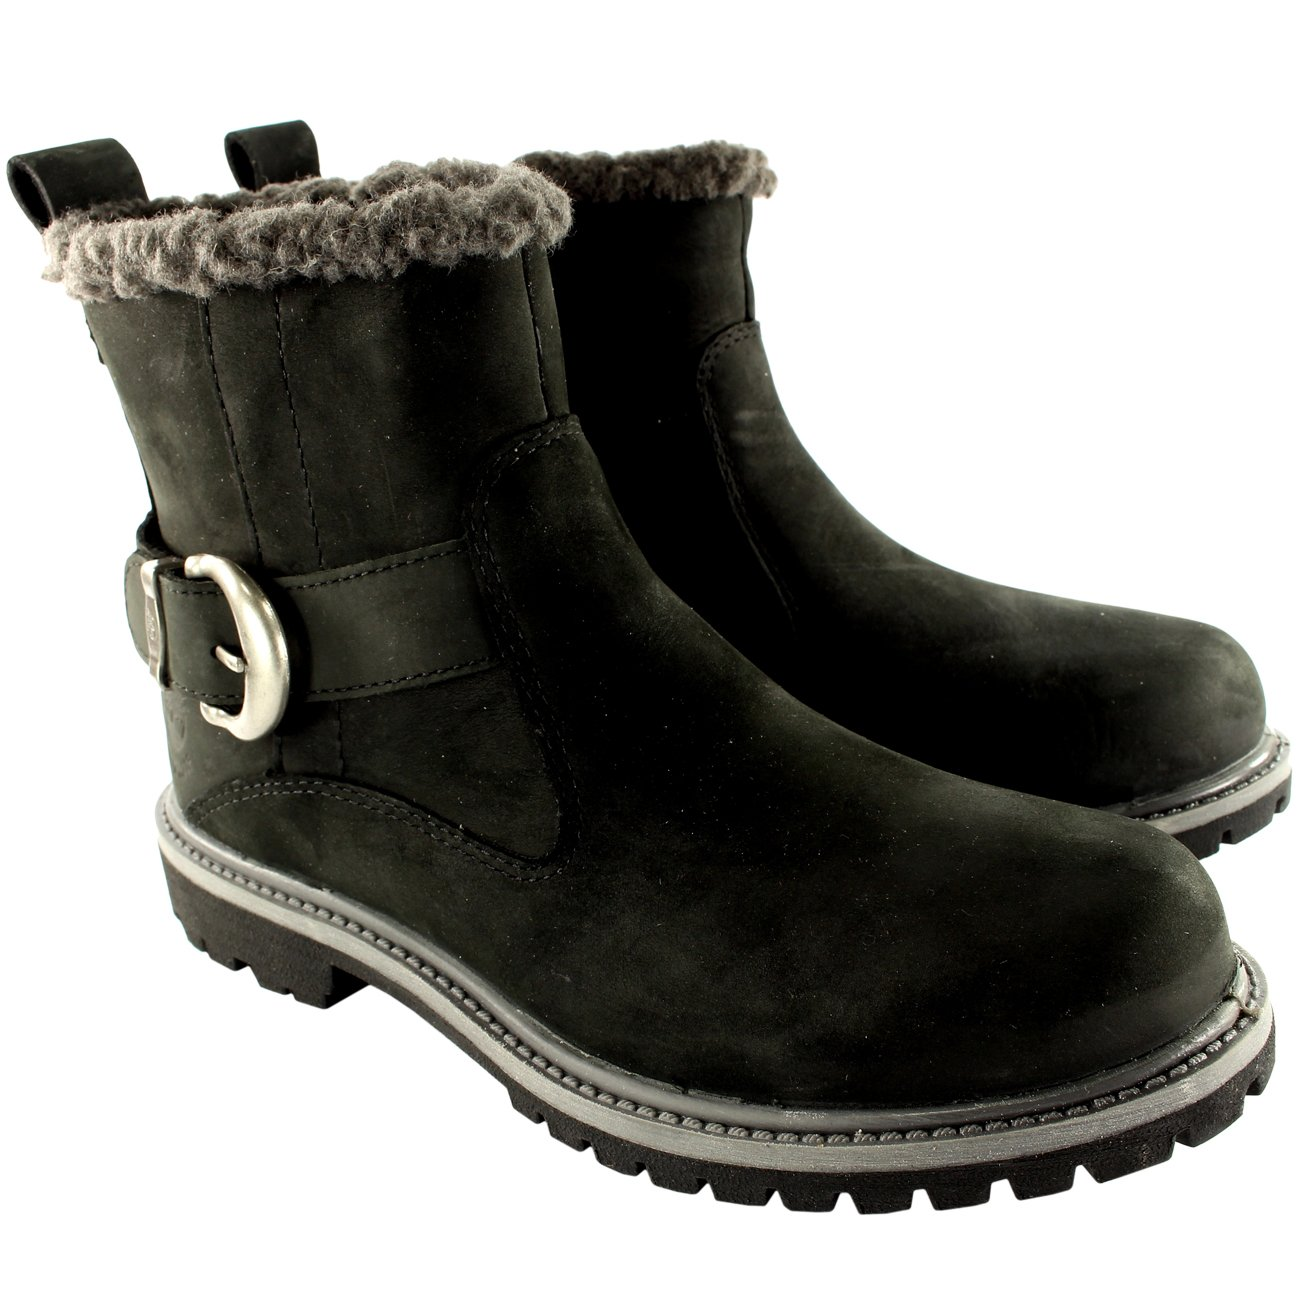 8d7737604fd0 Timberland Womens Earthkeepers Nellie Biker Fur Lined Mid Calf Boots UK  3-8  Amazon.co.uk  Shoes   Bags